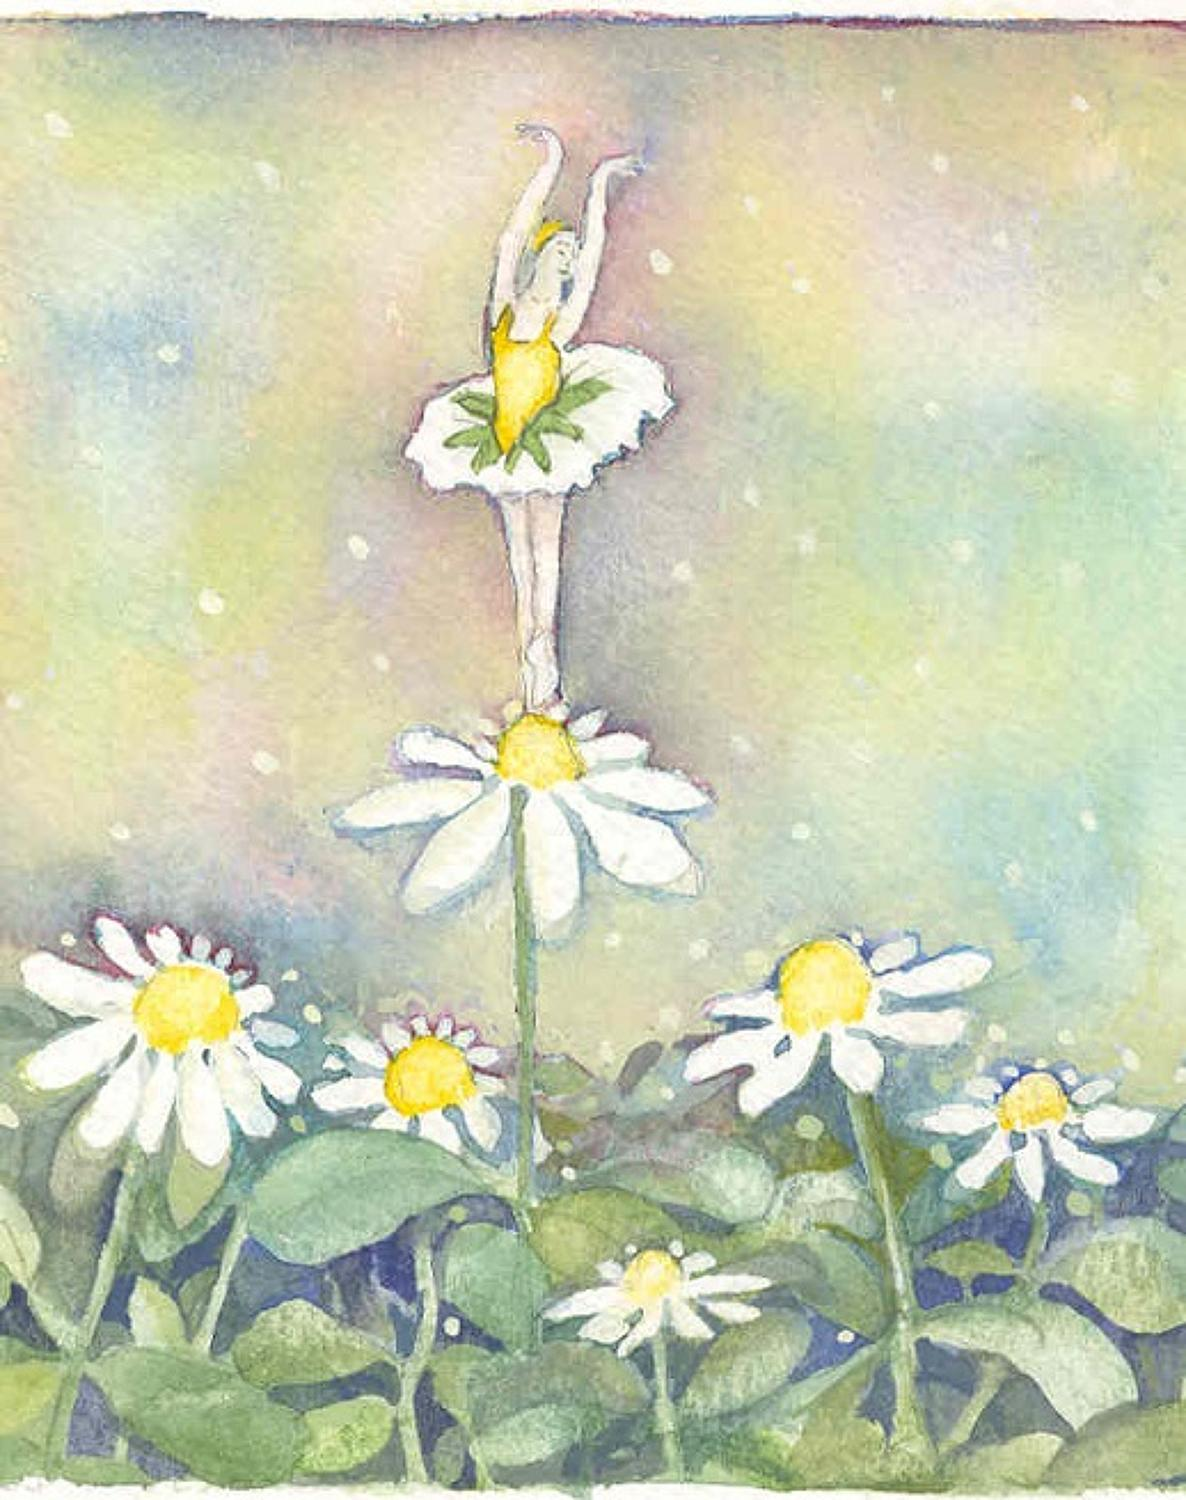 Dancing on daisies